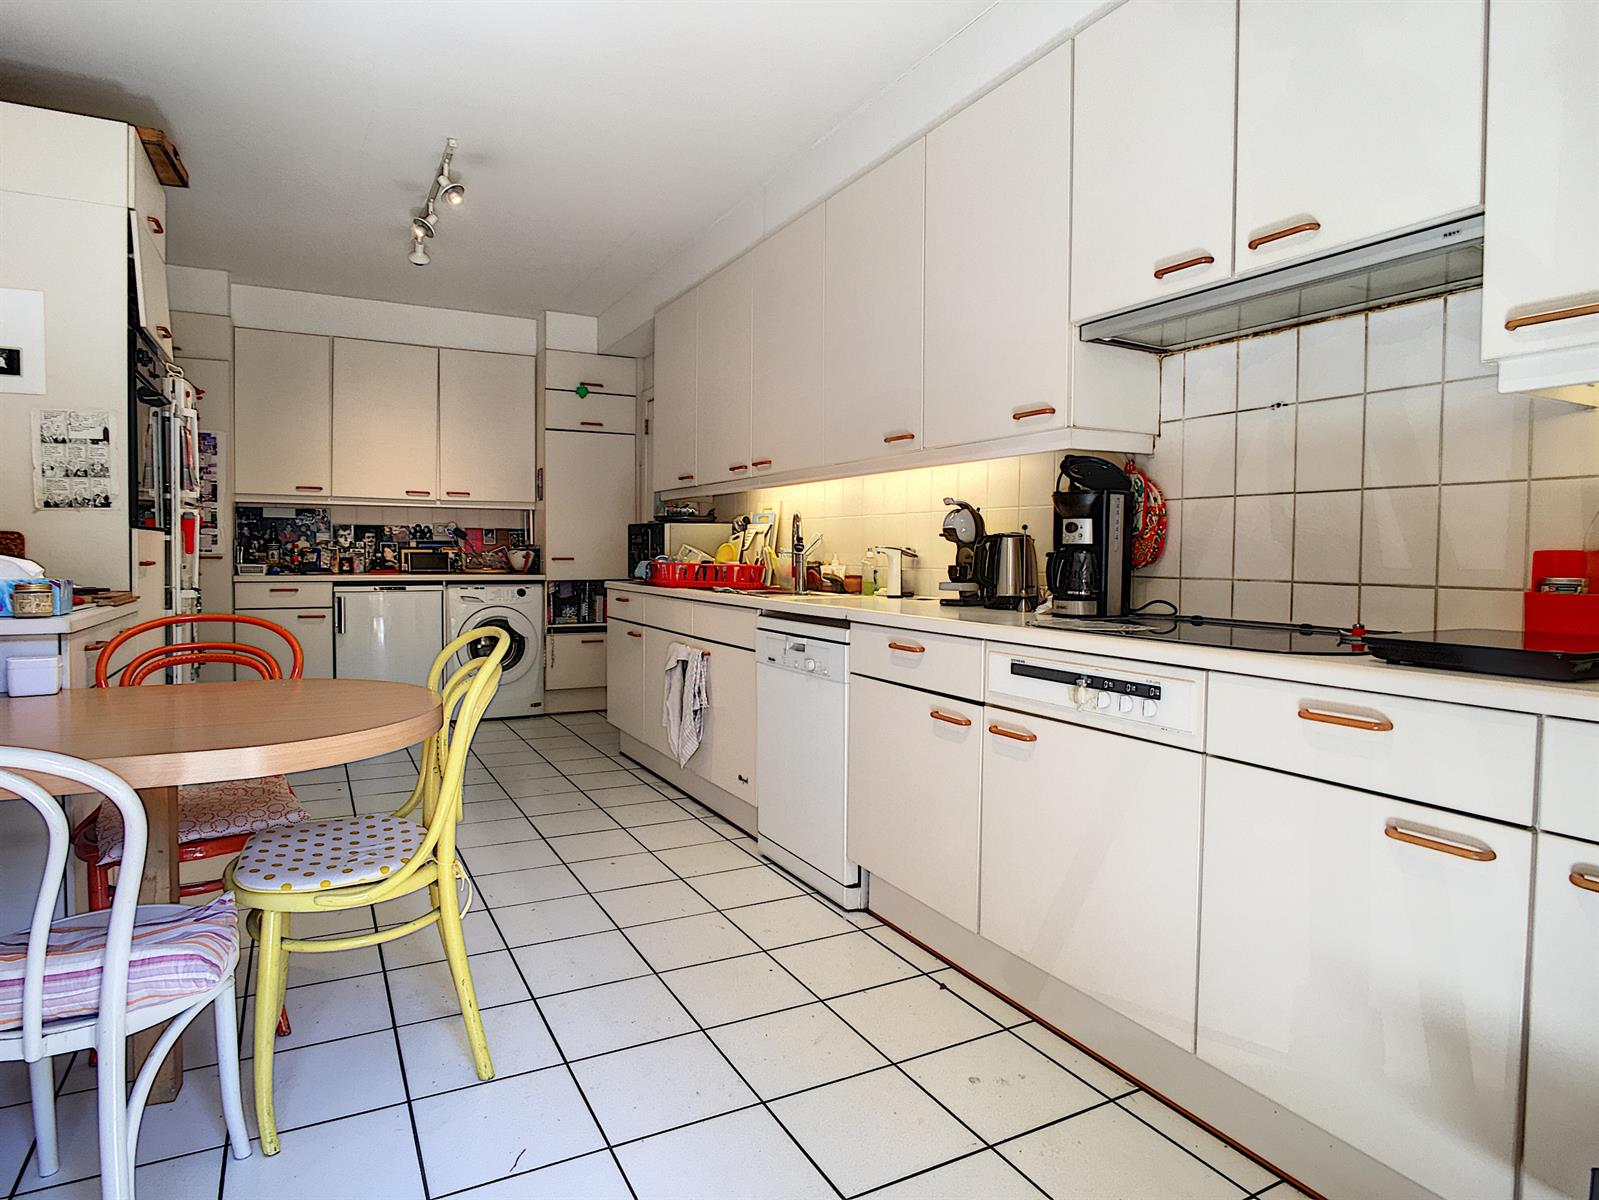 Apartment with garden - Woluwe-Saint-Pierre - #4169164-7